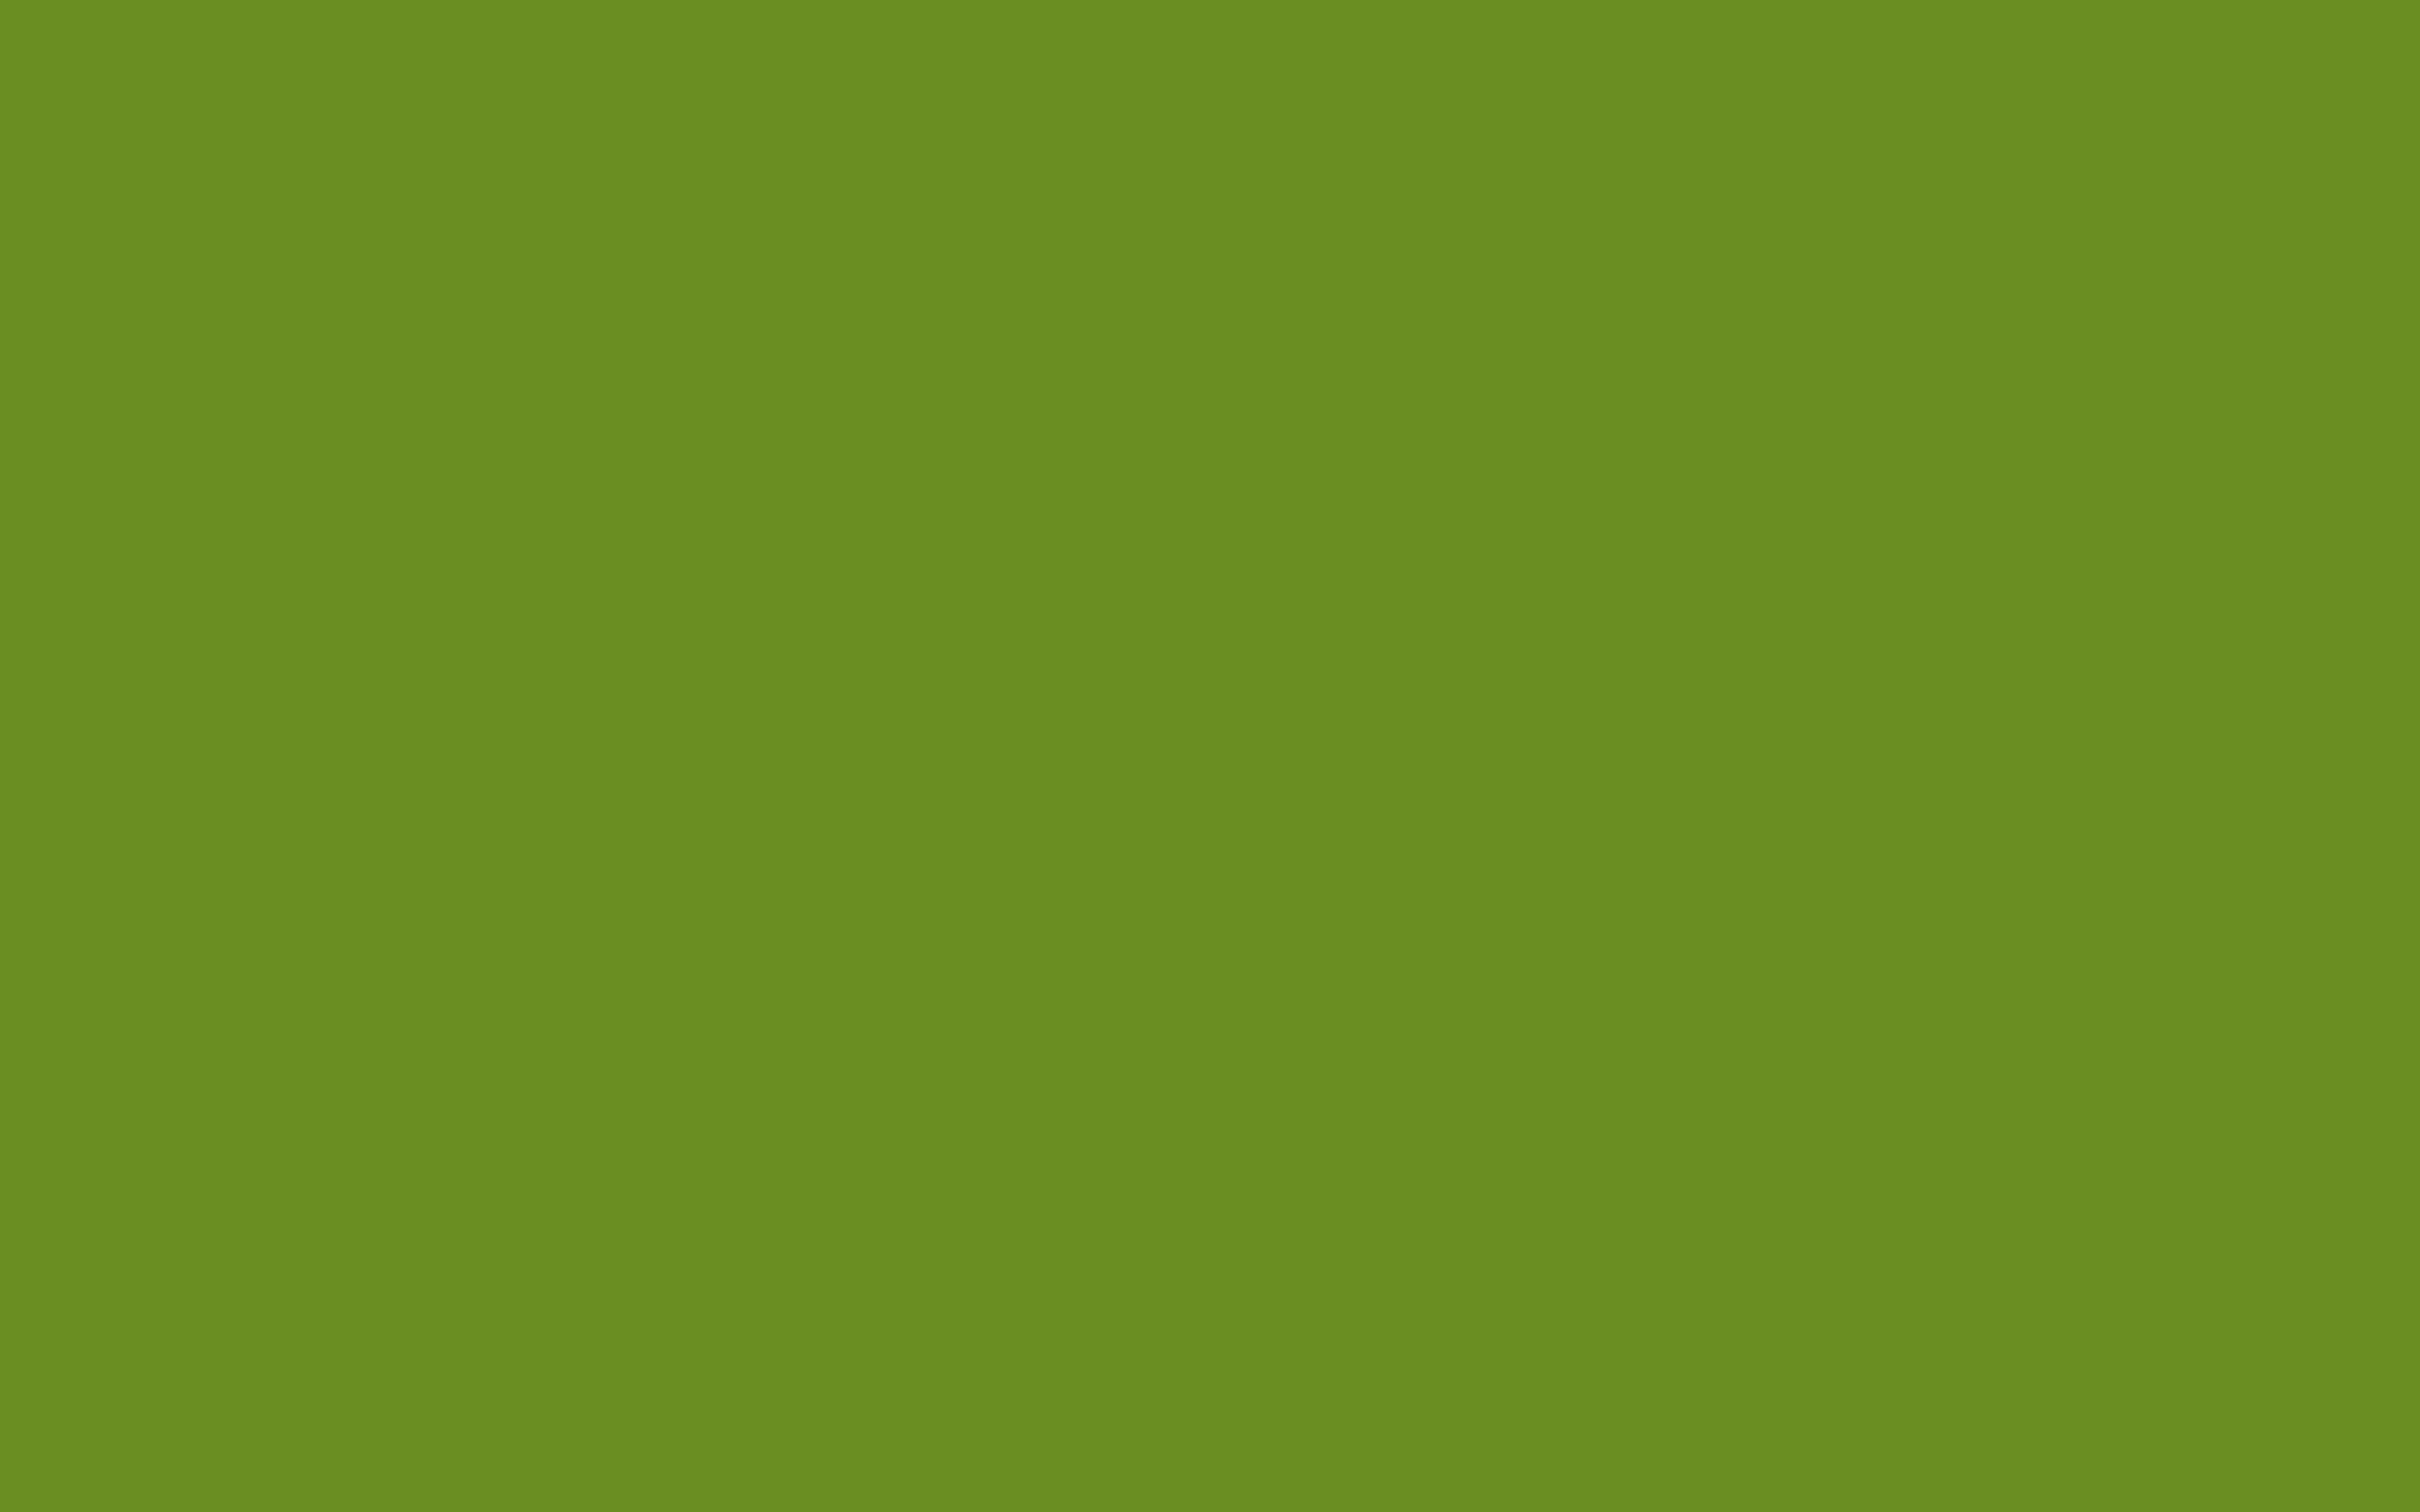 2880x1800 Olive Drab Number Three Solid Color Background